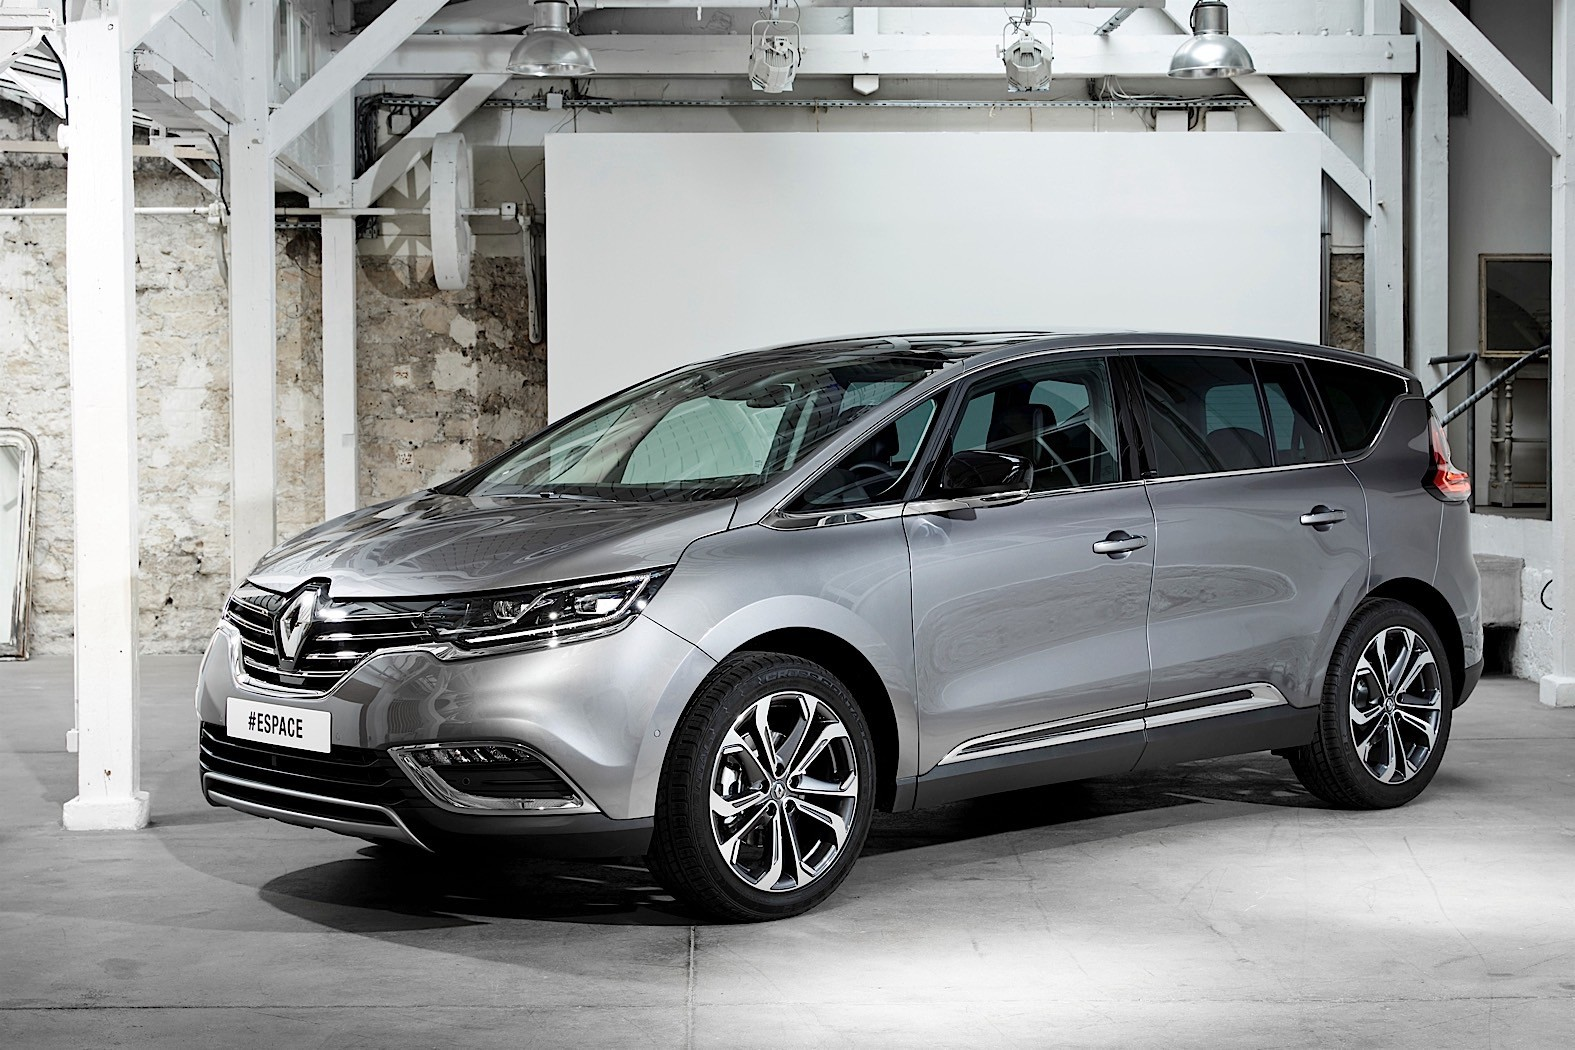 2016 renault espace review autoevolution. Black Bedroom Furniture Sets. Home Design Ideas